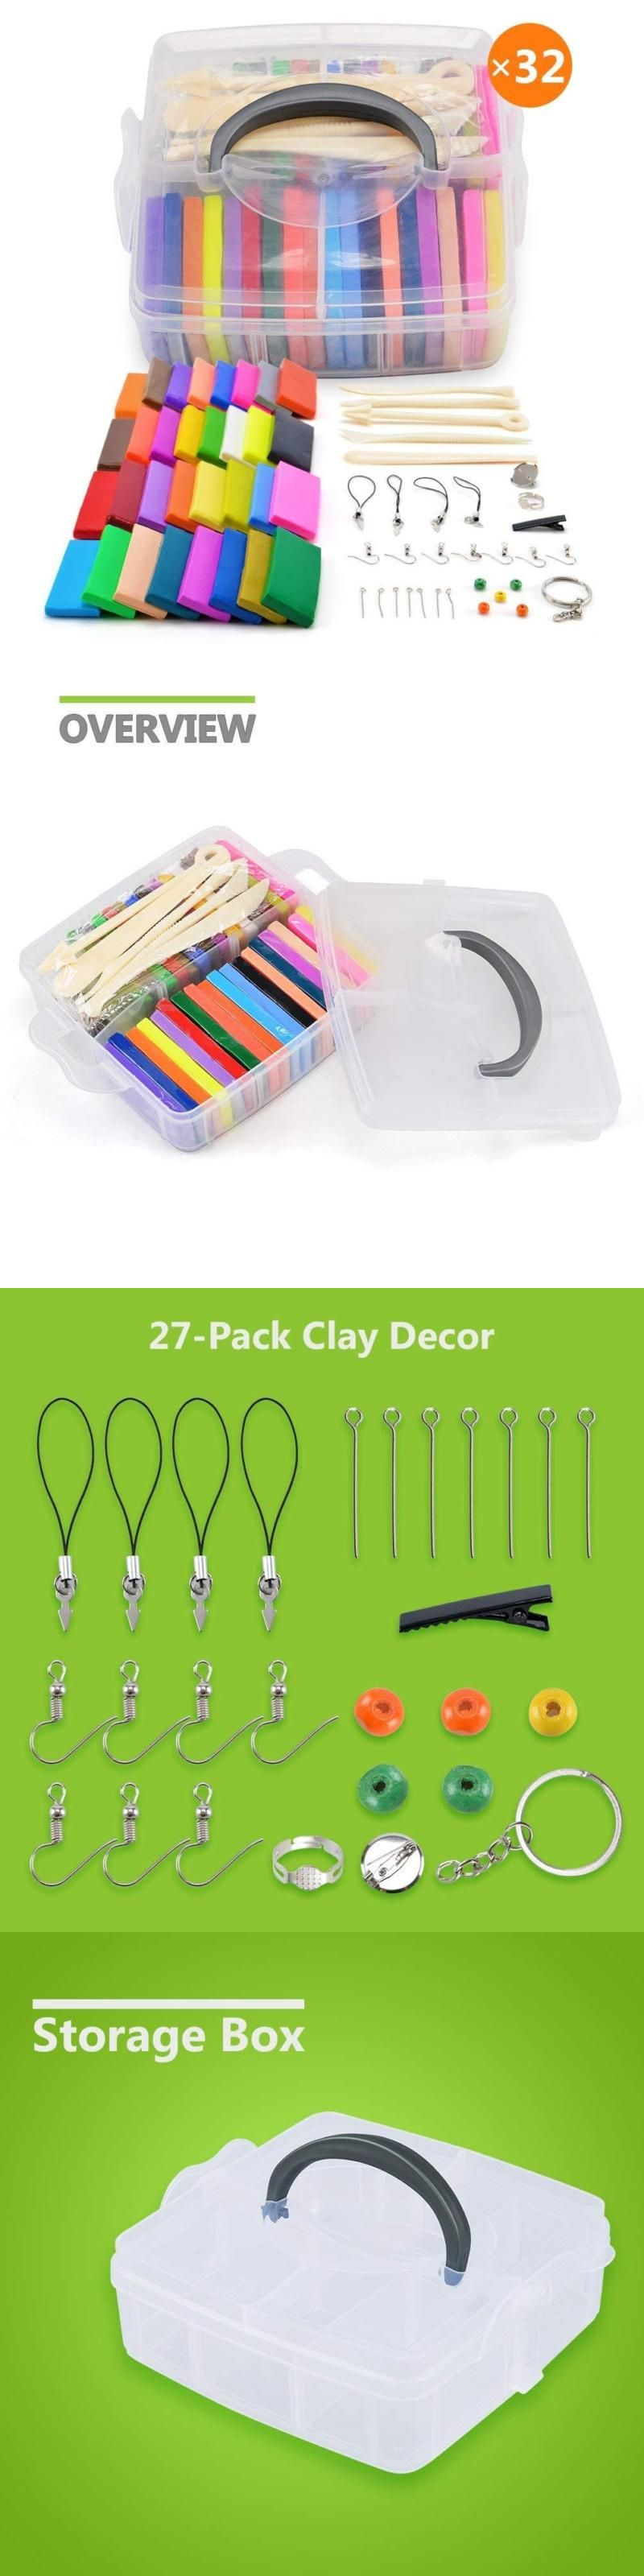 32 Blocks Polymer Clay Set Colorful DIY Soft Craft Oven Bake Modelling Clay Kit,